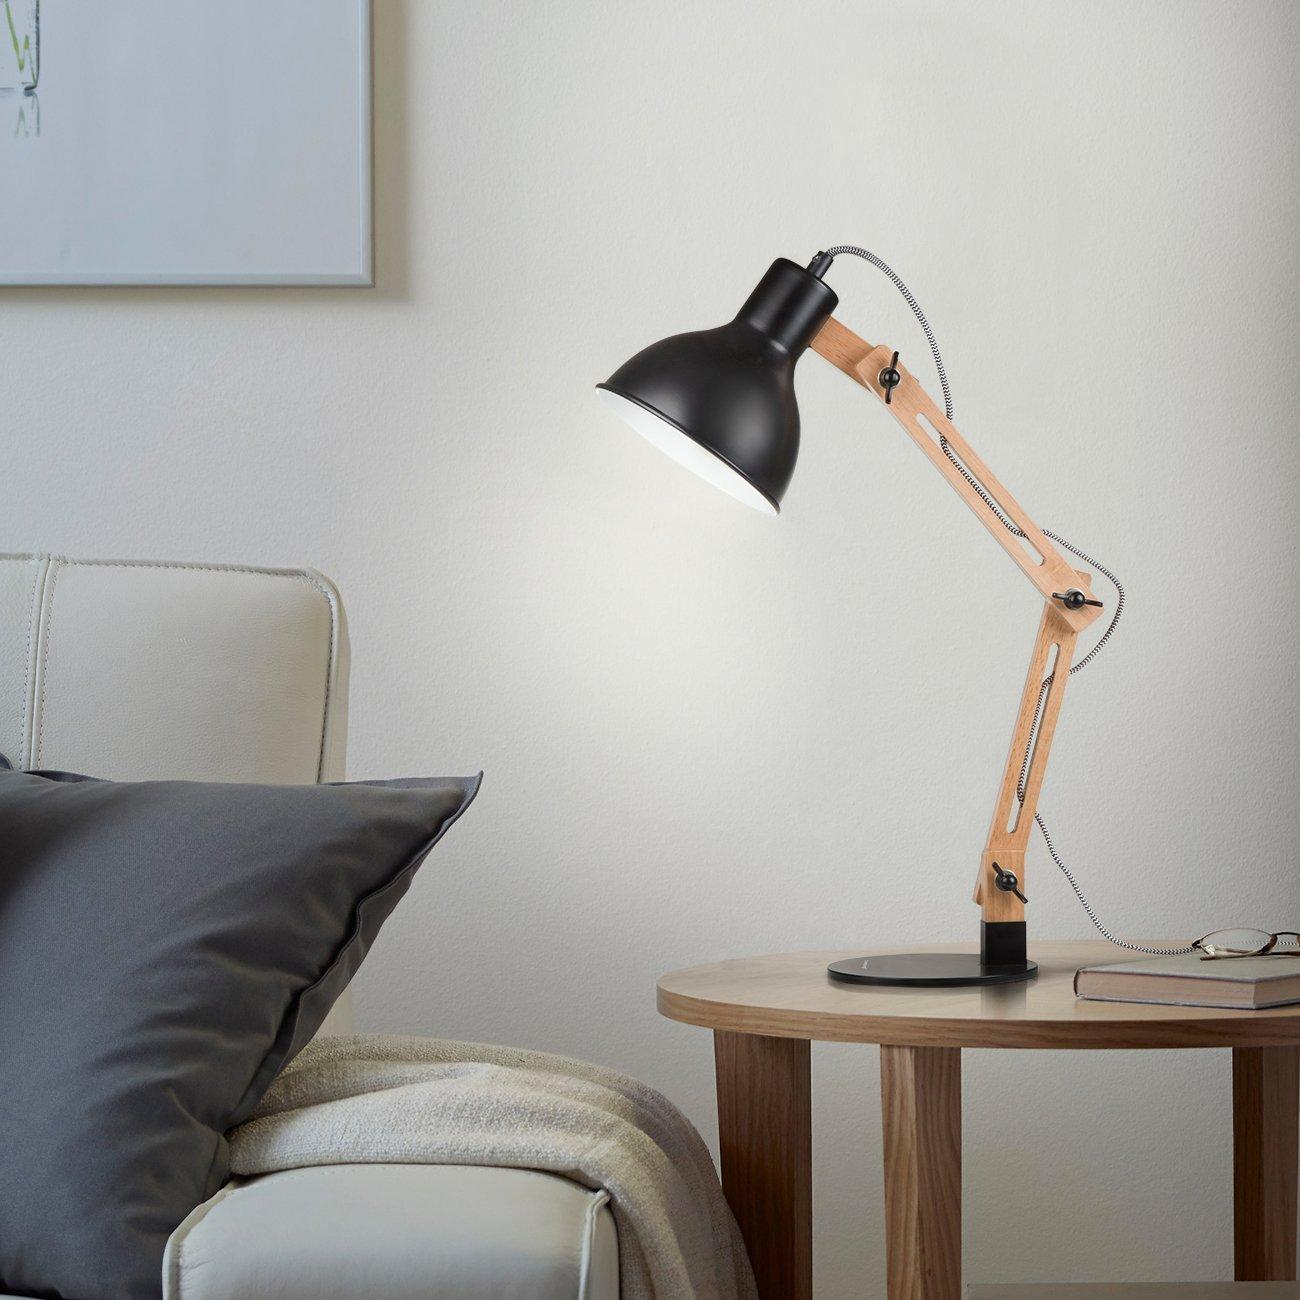 Tomons Scandinavian Swing Arm Desk Lamp, Designer Wood Table Lamp for Living Room